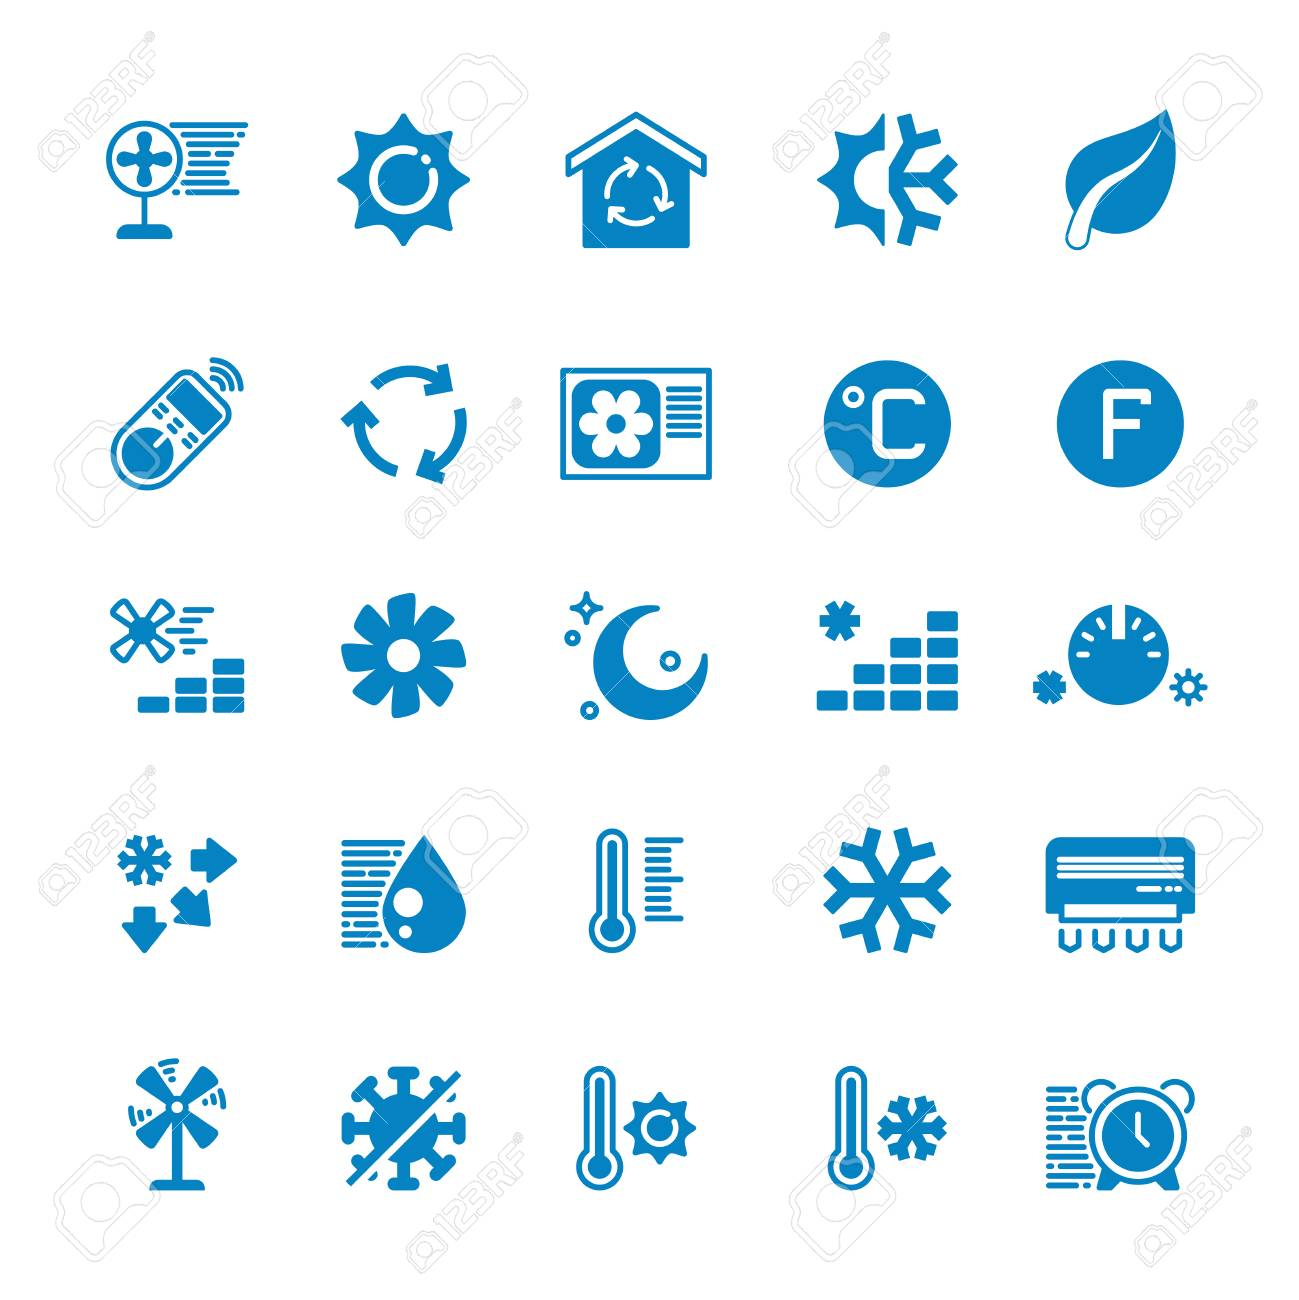 Fine air condition symbols photos the best electrical circuit air conditioning symbols meaning gallery symbol and sign ideas buycottarizona Choice Image